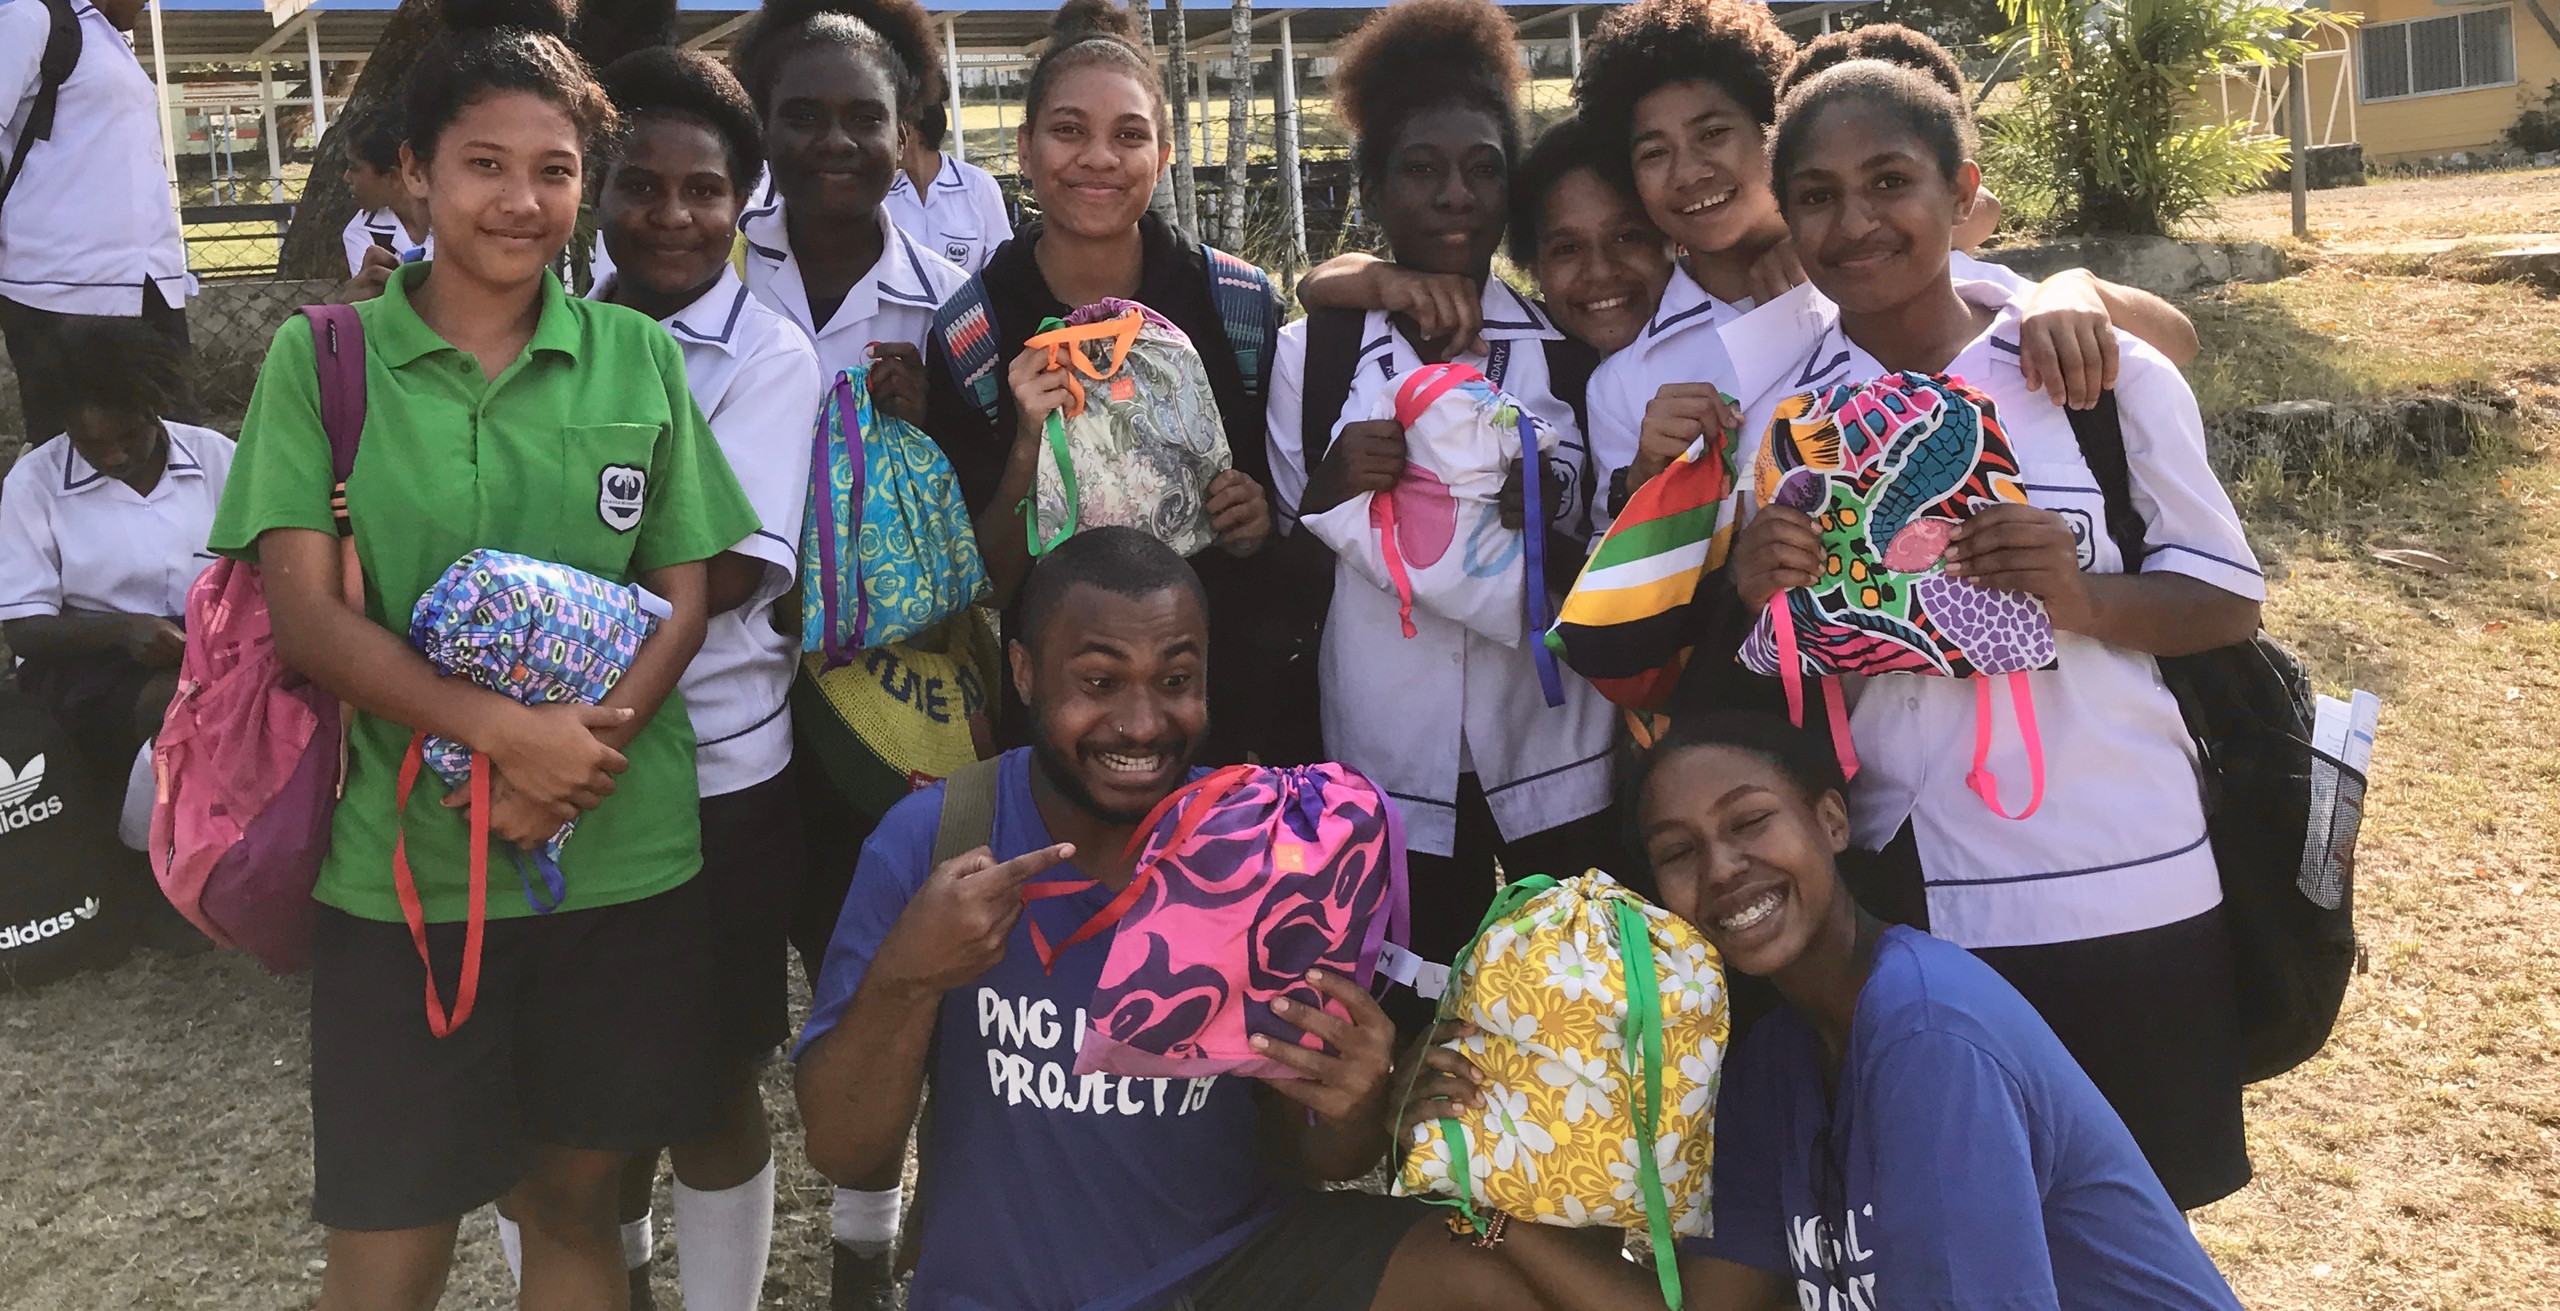 PHP 2019 team and students holding the beautiful reusable period kits from Days for Girls.